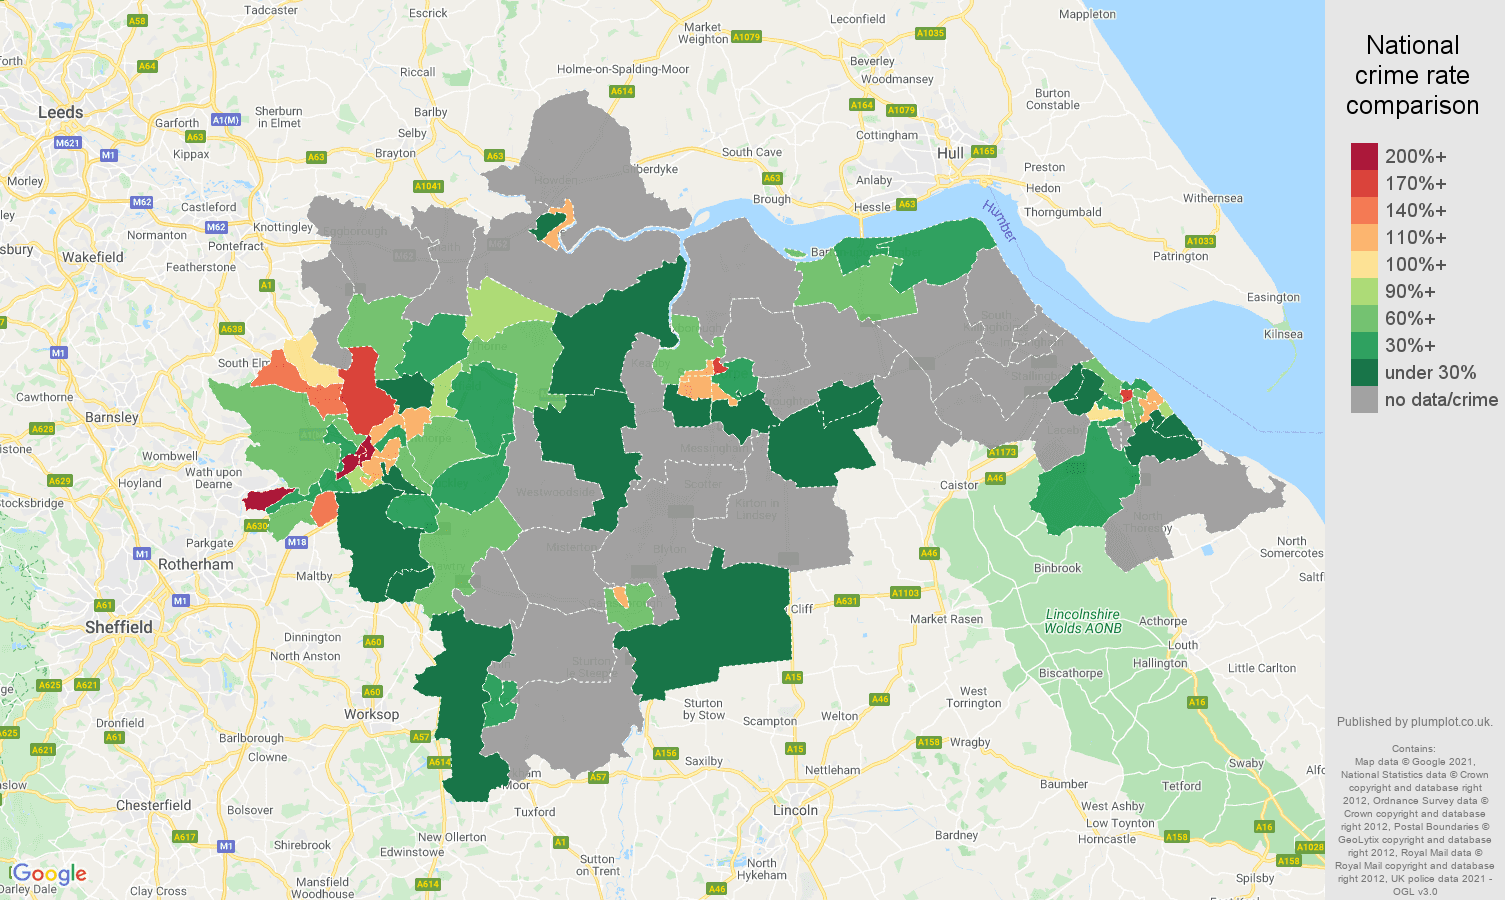 Doncaster robbery crime rate comparison map